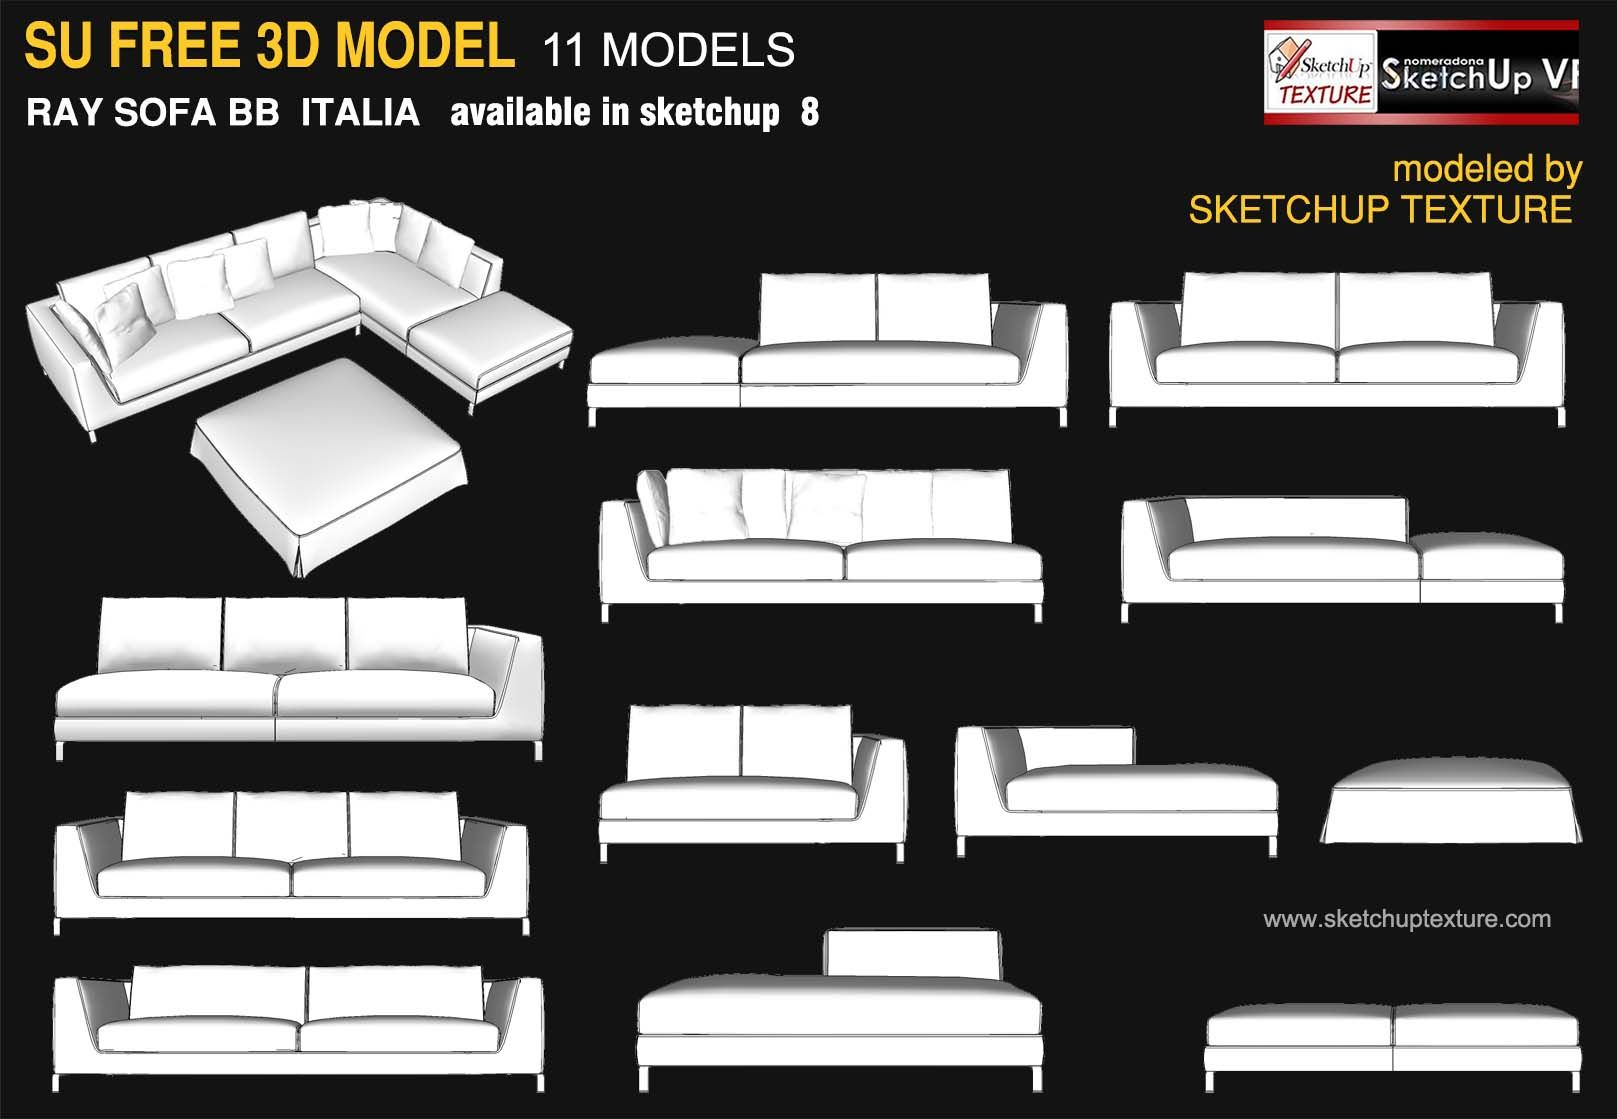 Awesome Free Sketchup 3d Model Ray Sofa BB Italia Furniture